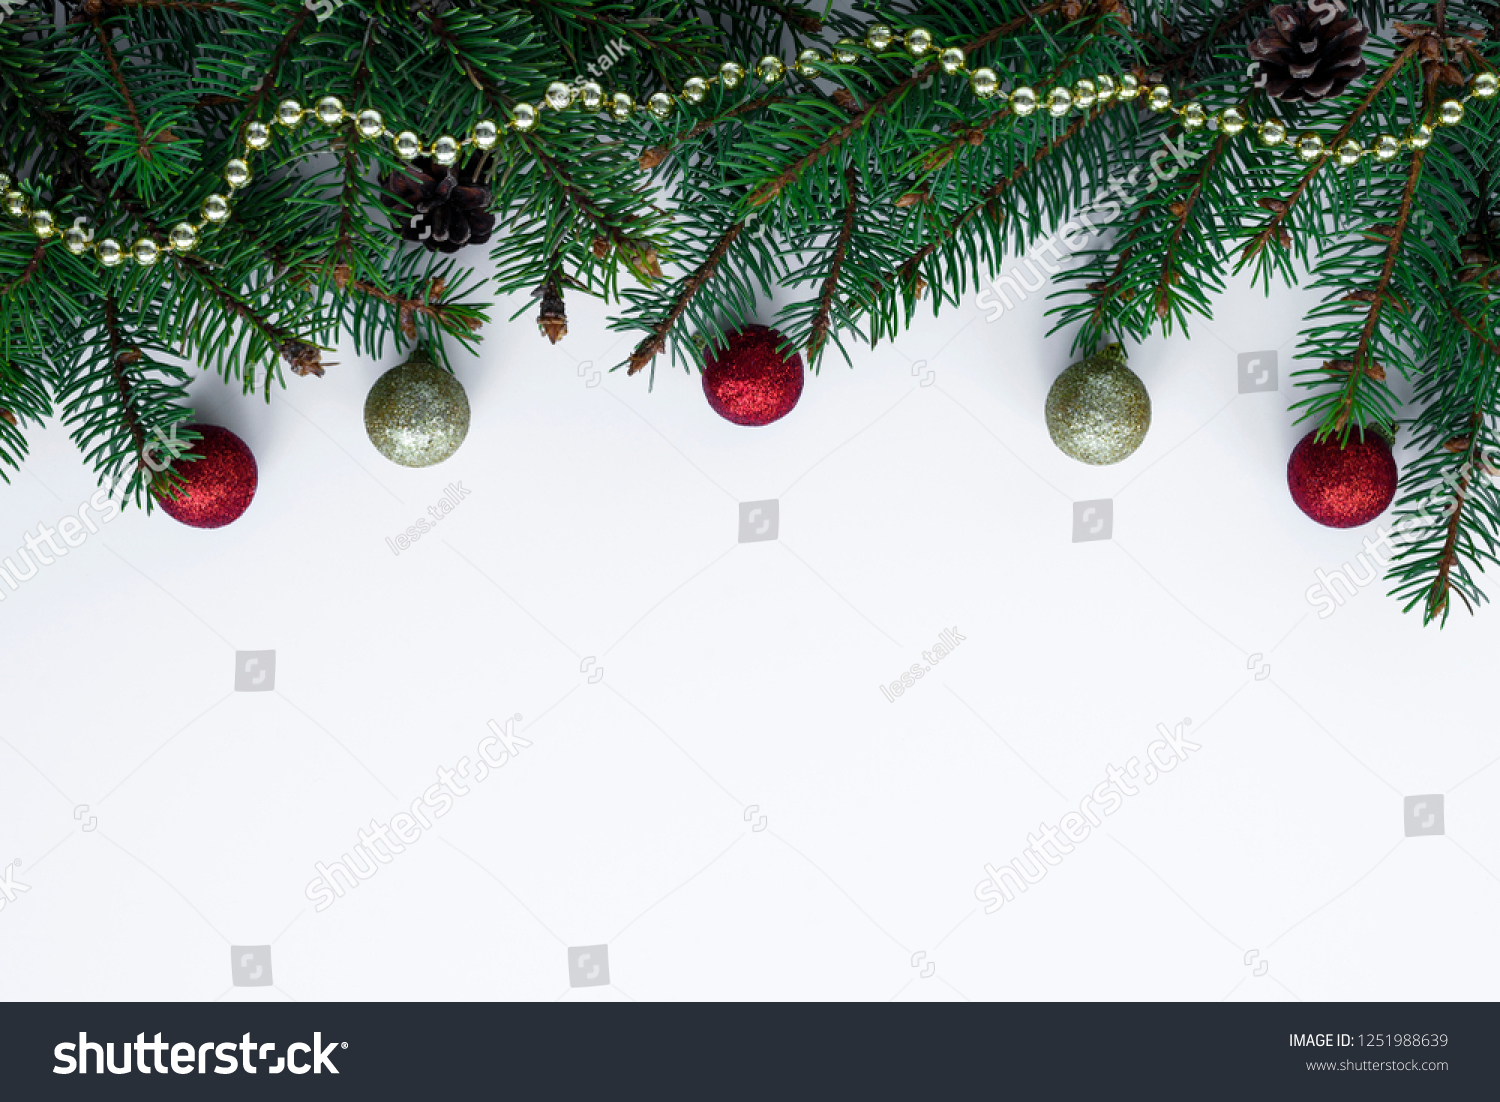 Decorative garland from christmas tree branches and cones. Top frame on white background, arranged from chain, little red and gold baubles. Copy space for wishes. #1251988639